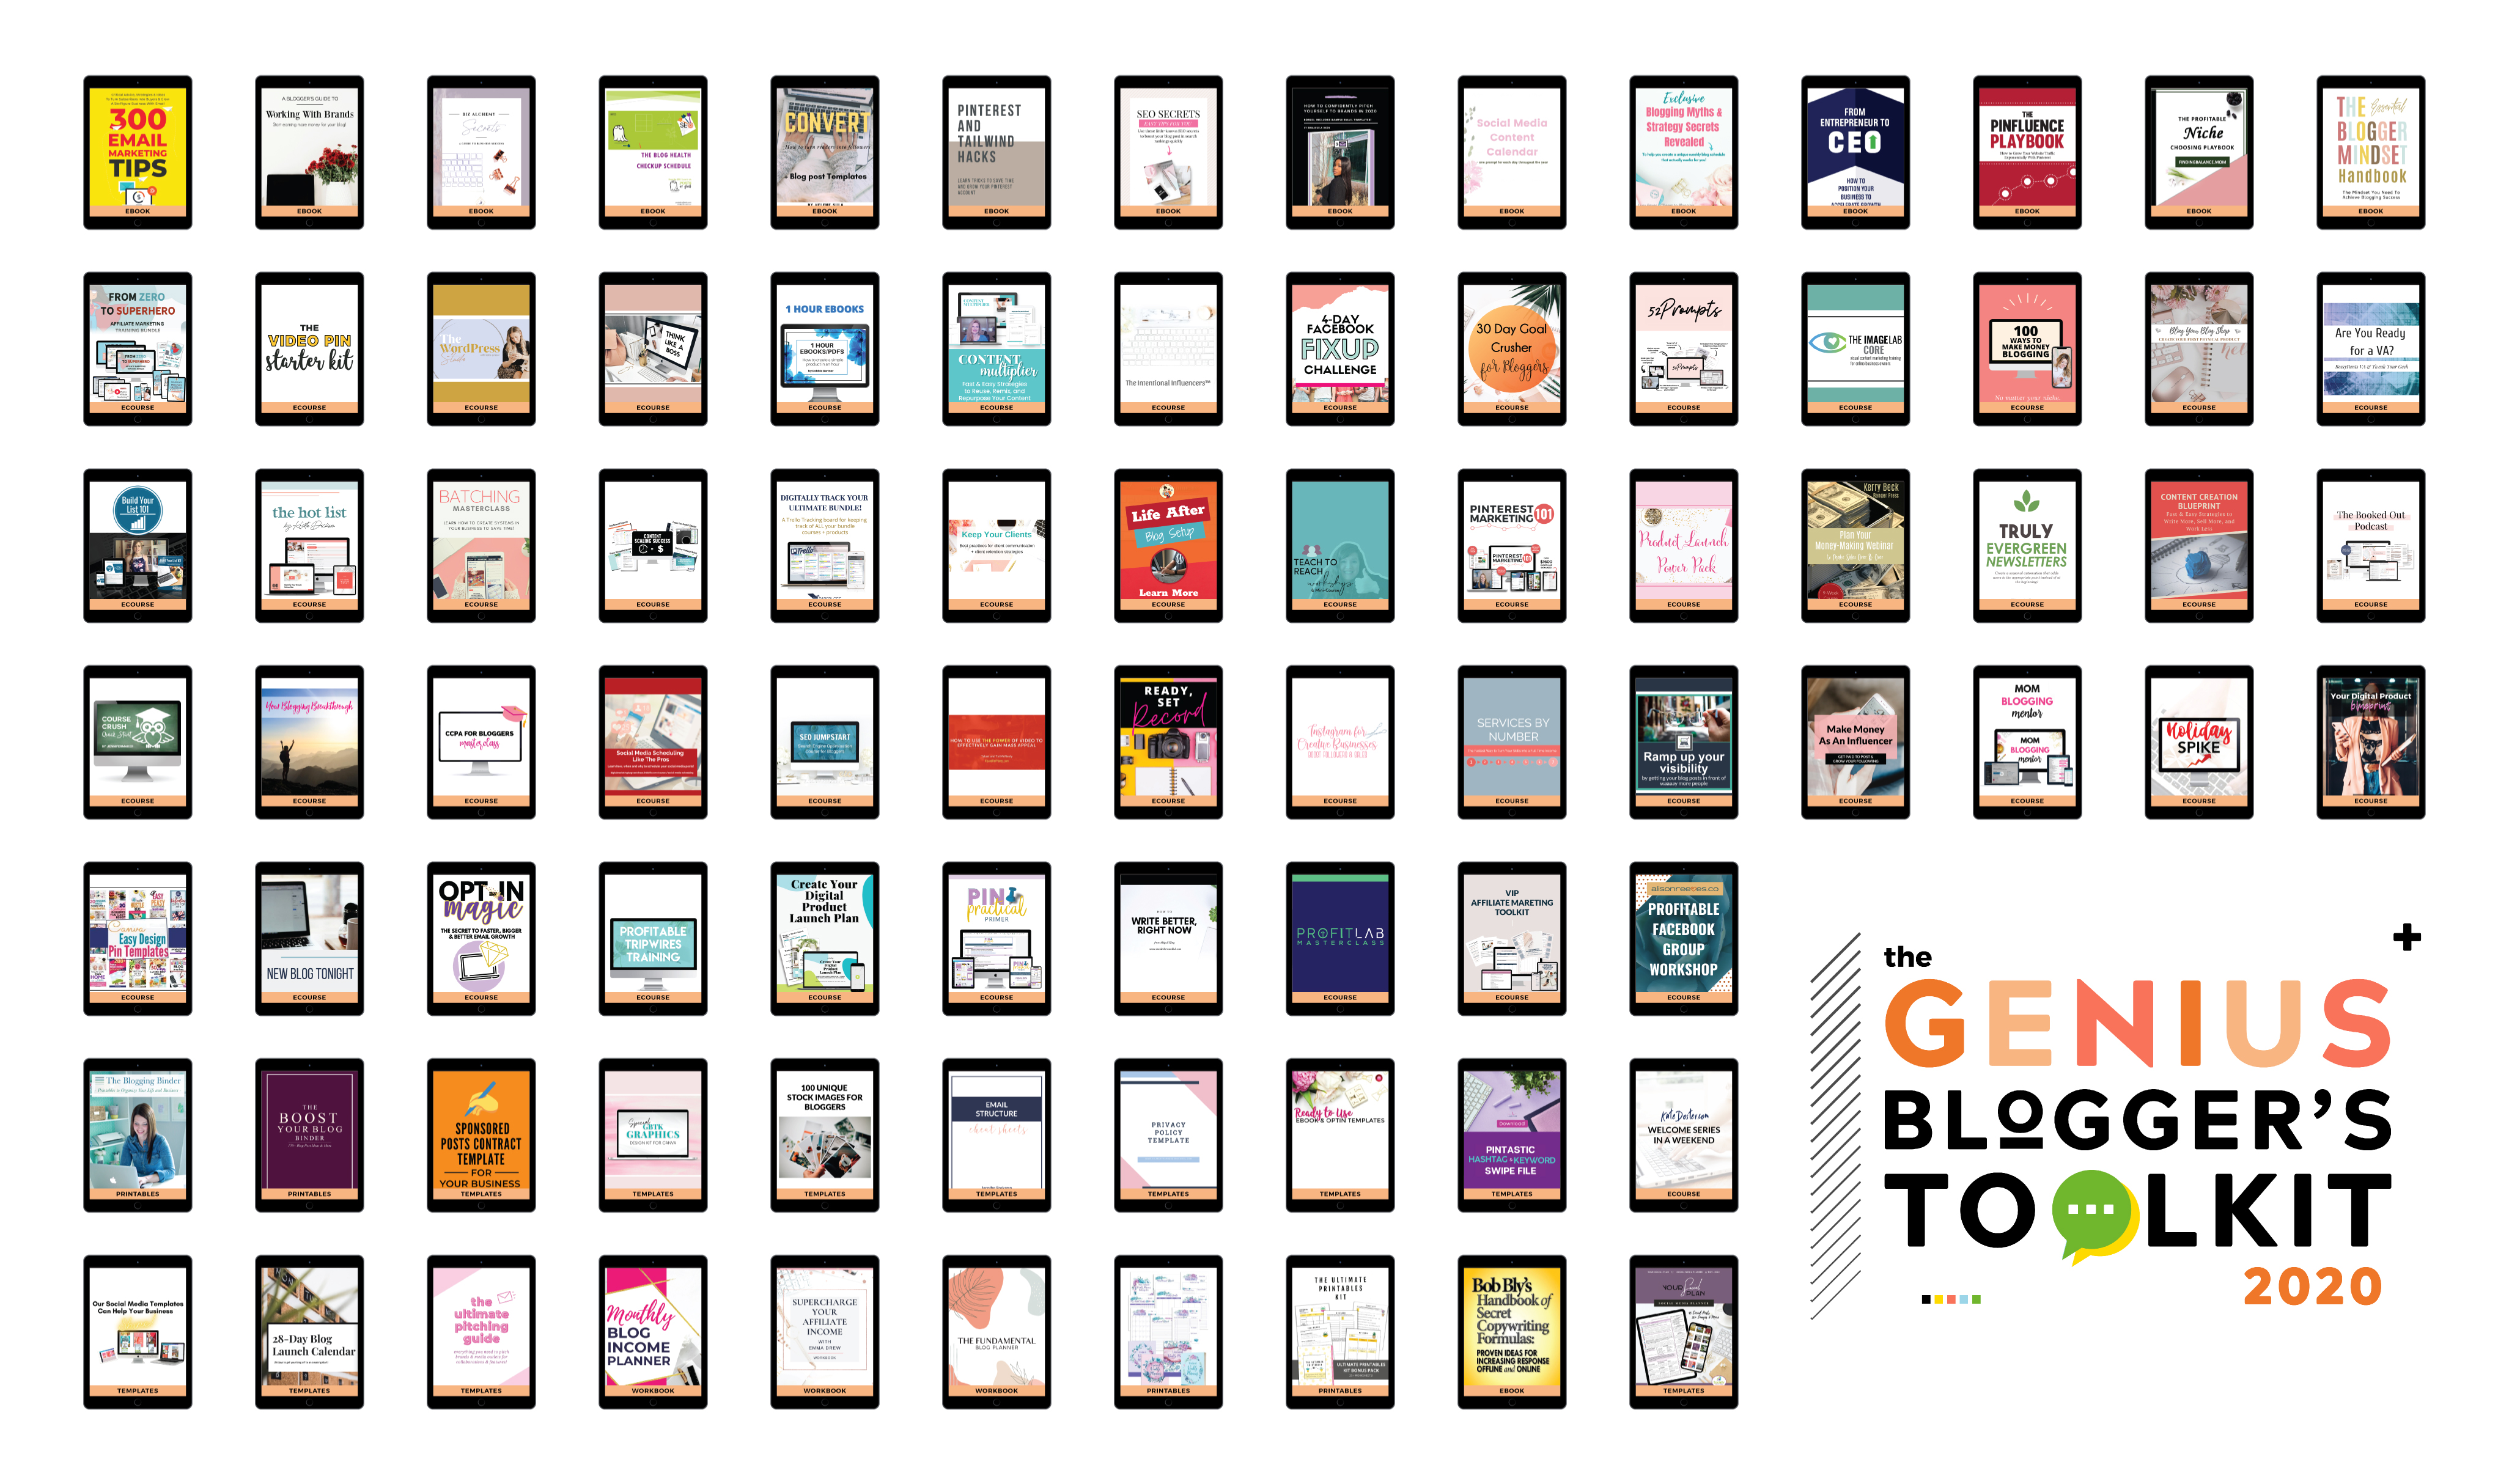 Review of the 2020 Genius Bloggers Toolkit by Ultimate Bundles - eBooks, Courses, Resources and Tools for Blogging Success. Get the details!